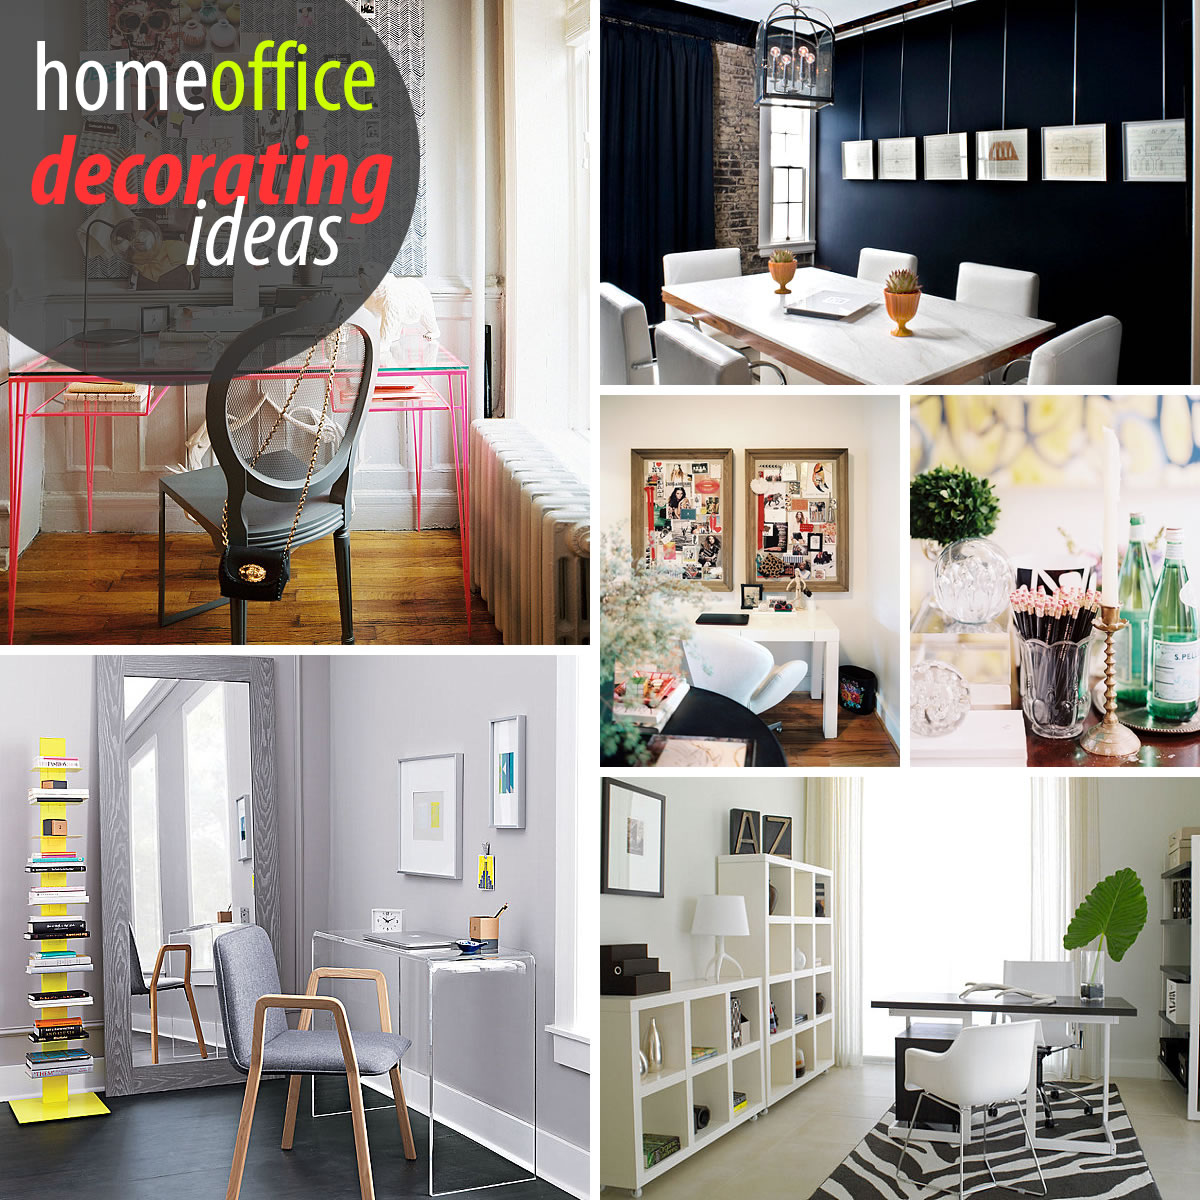 Creative home office decorating ideas Small office makeover ideas